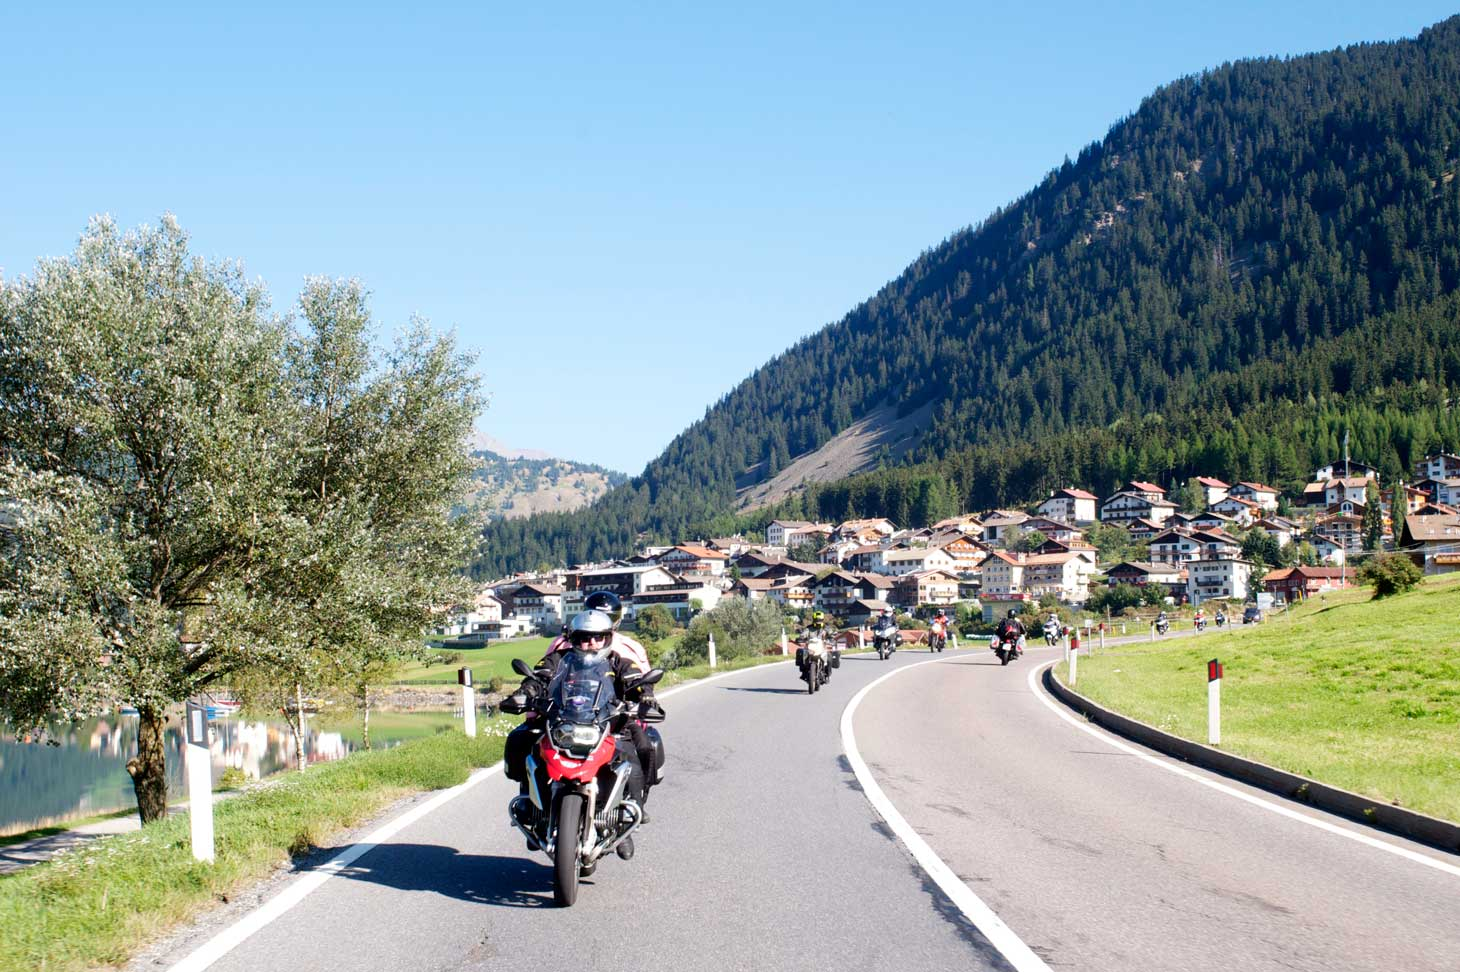 BMW MOA Alps Switchback Challenge 2019 Motorcycle Tour by Ayres Adventures